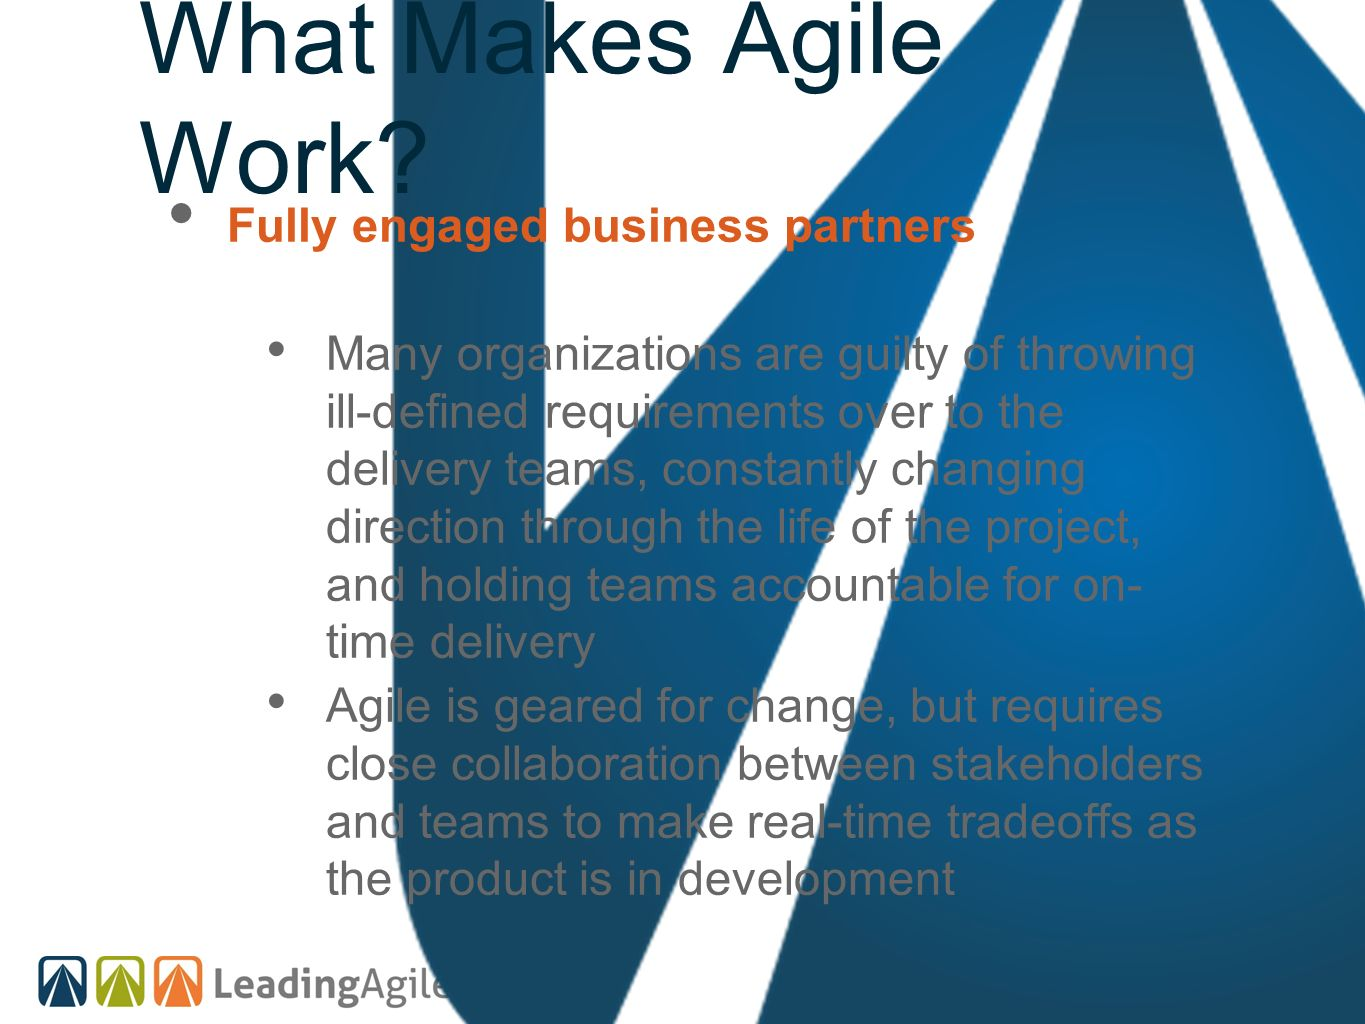 What Makes Agile Work? Fully engaged business partners Many organizations are guilty of throwing ill-defined requirements over to the delivery teams,